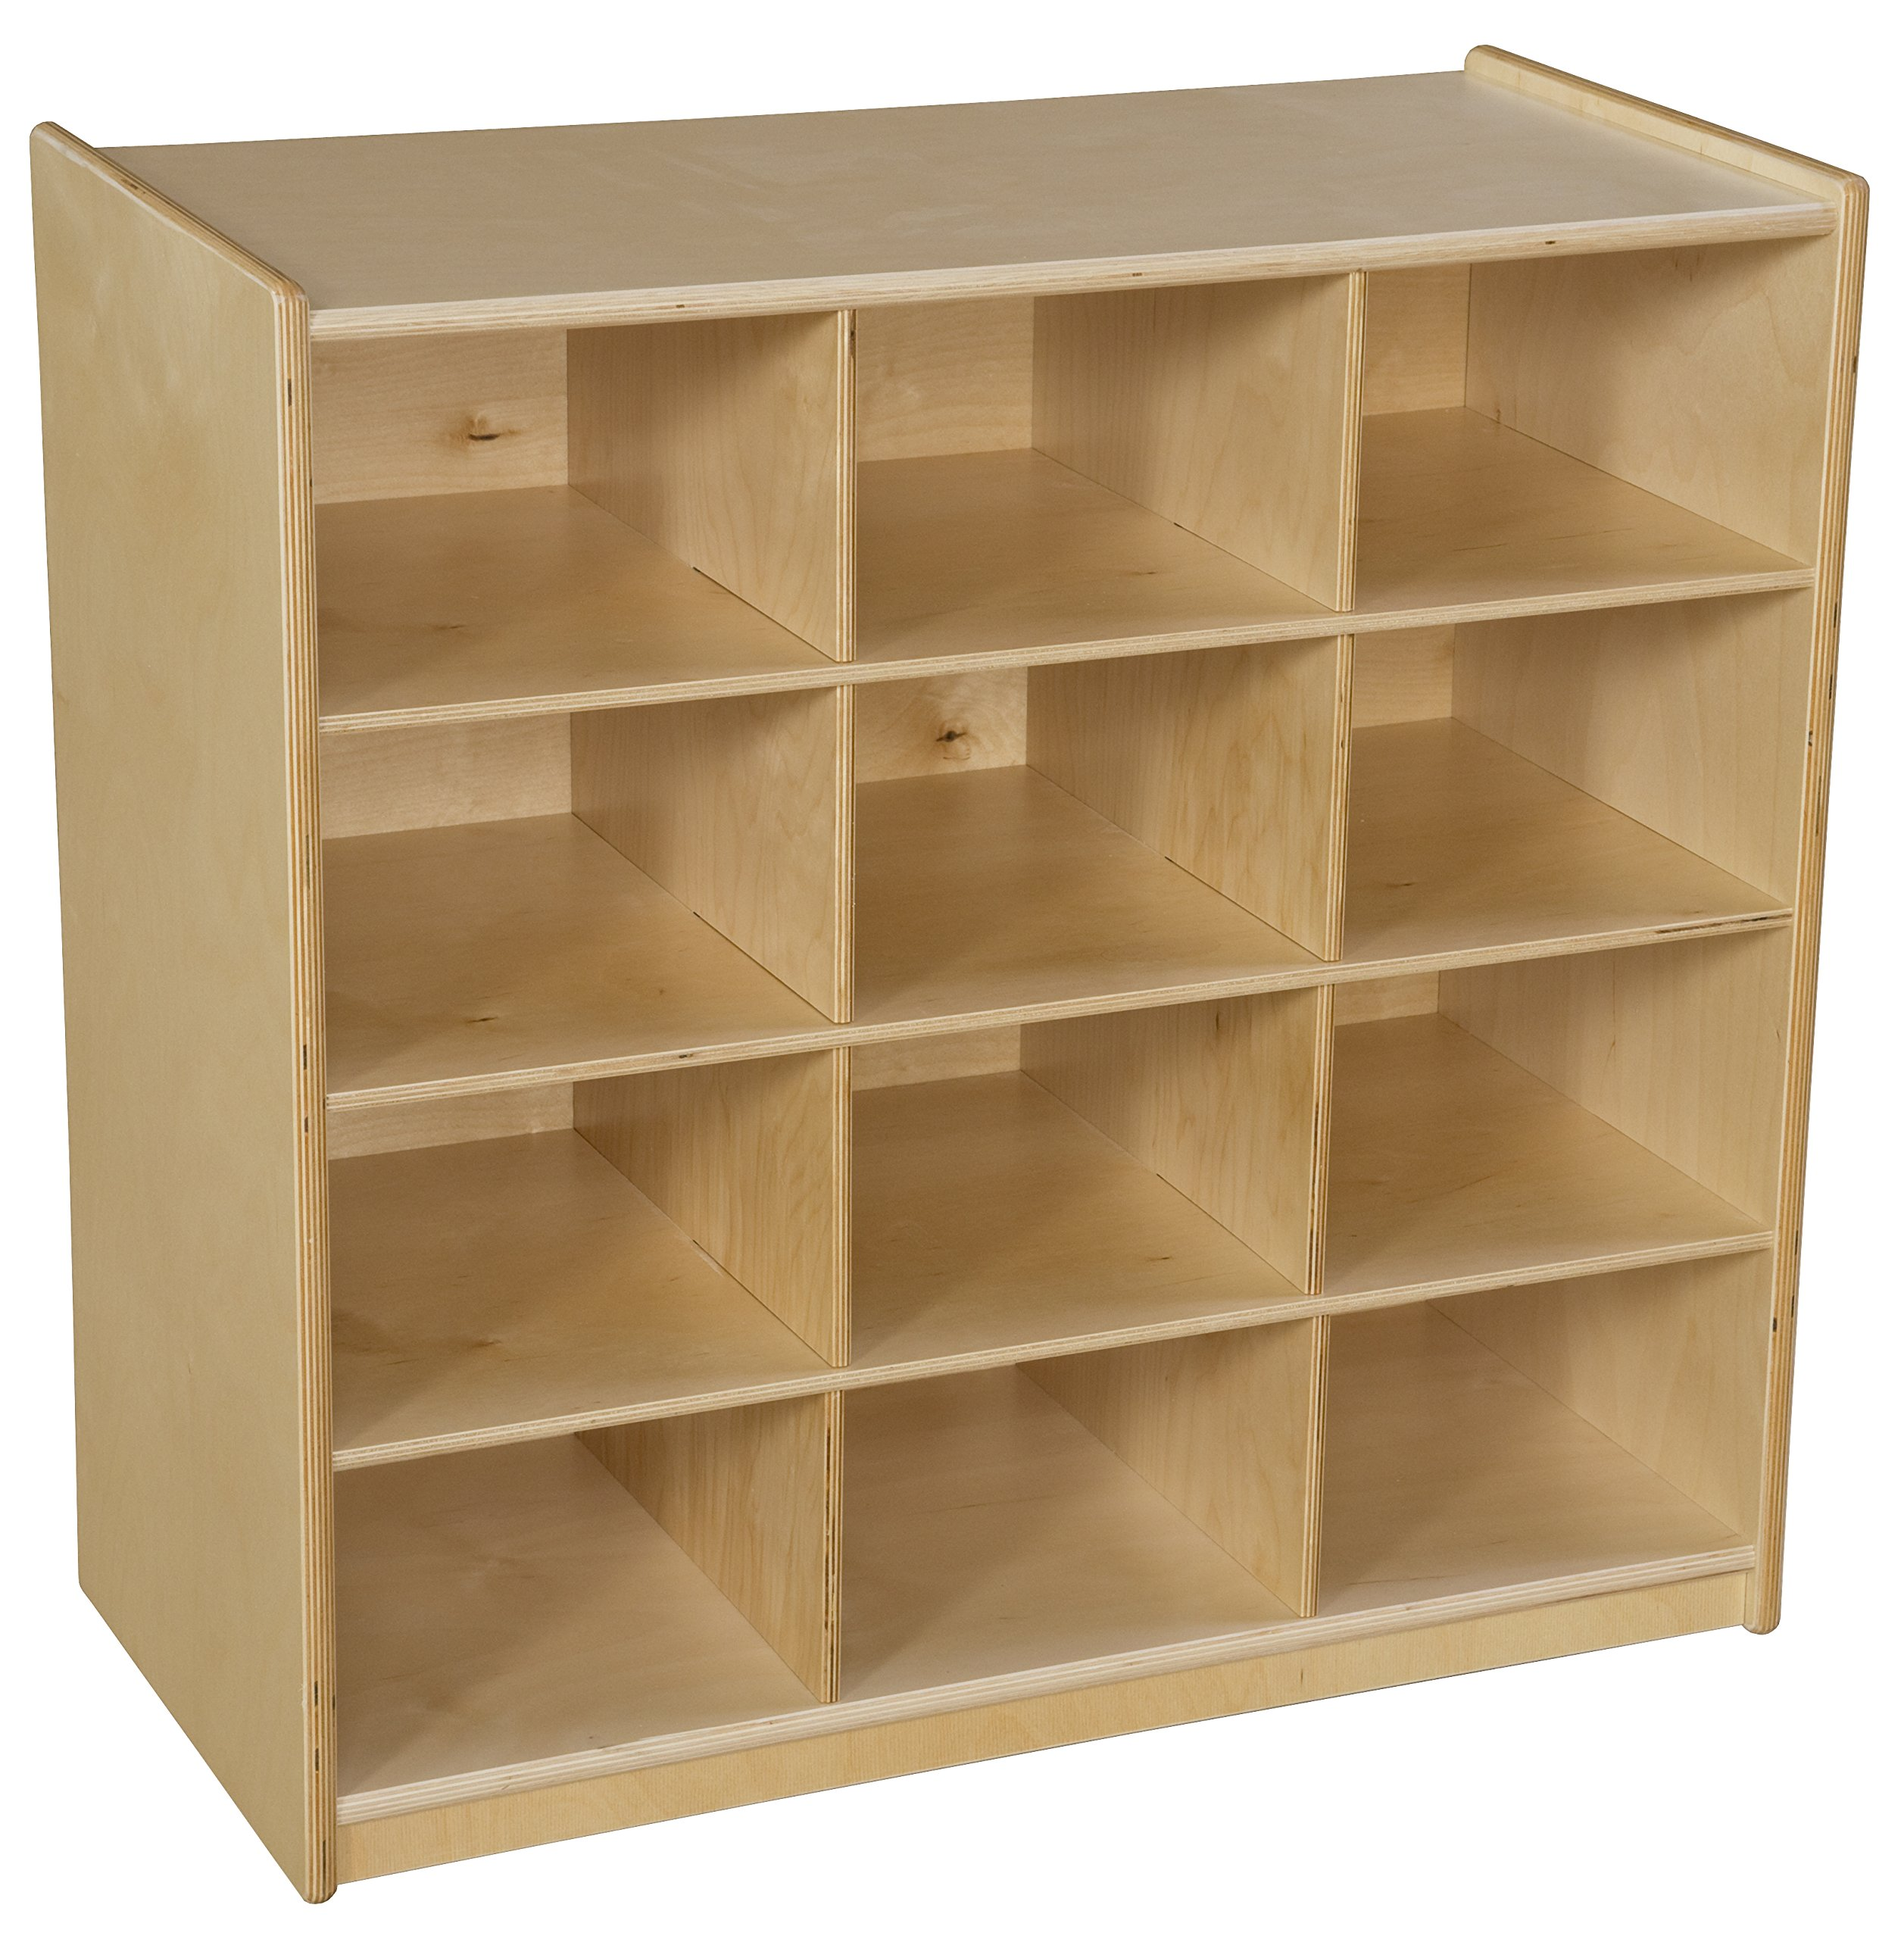 Wood Designs 16129 12 Cubby Storage without Trays